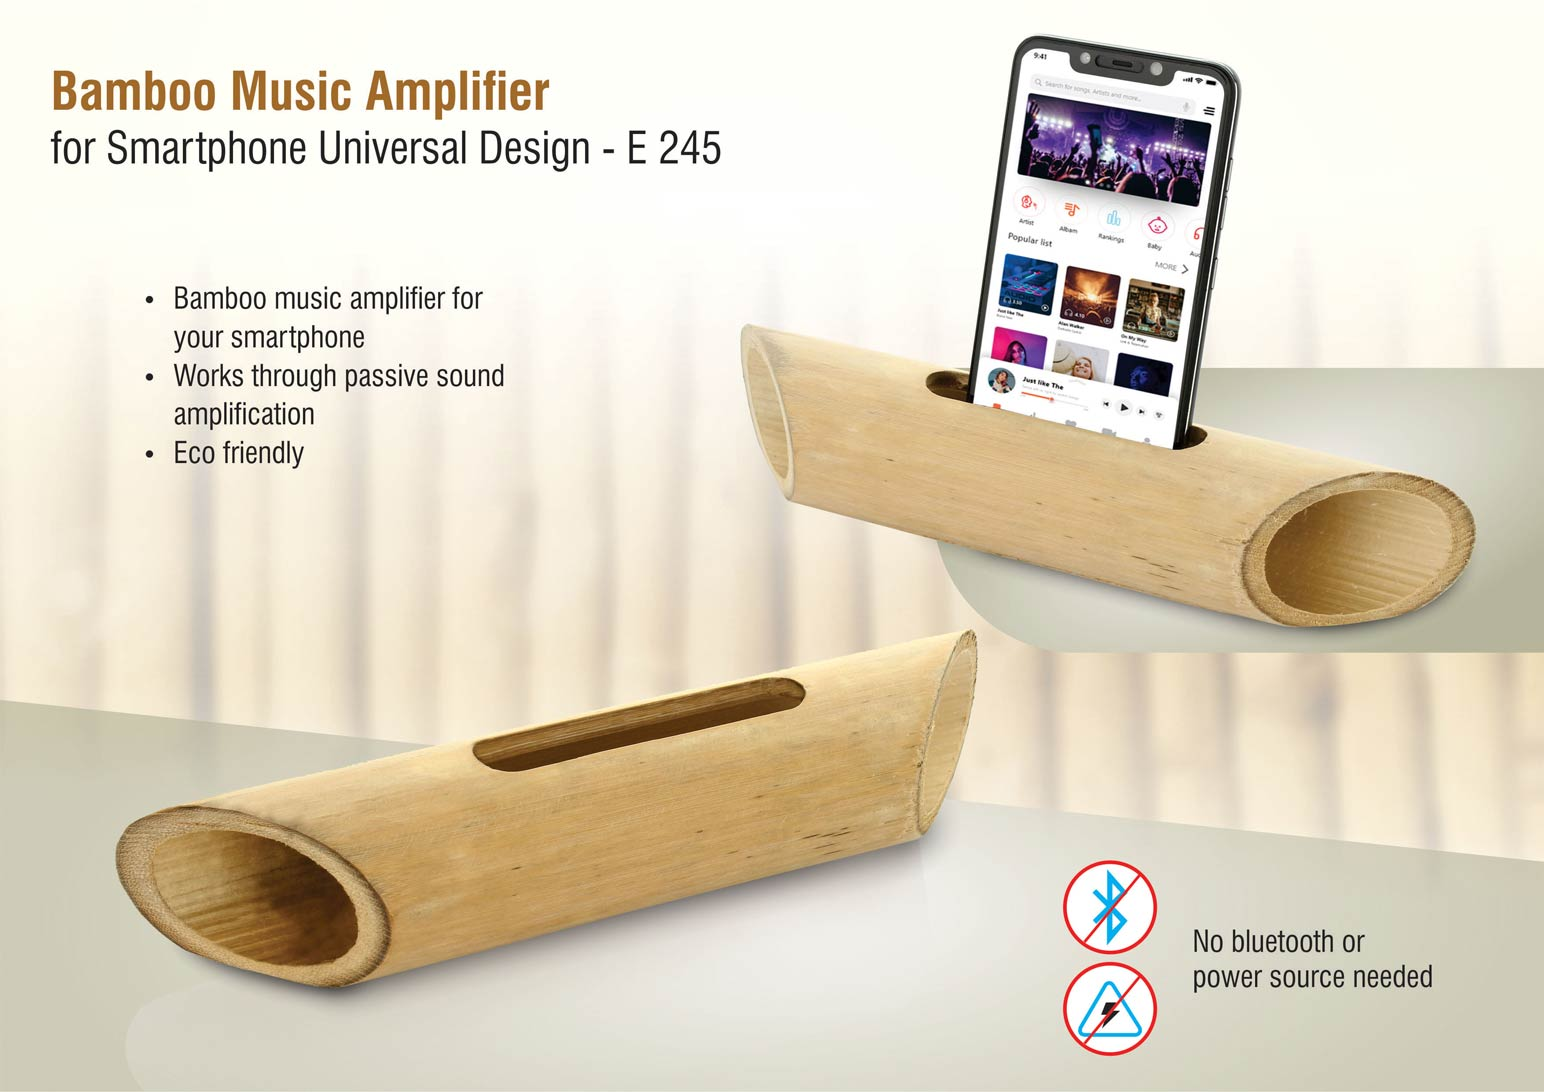 E245 - Bamboo Music Amplifier for Smartphones | Universal Design